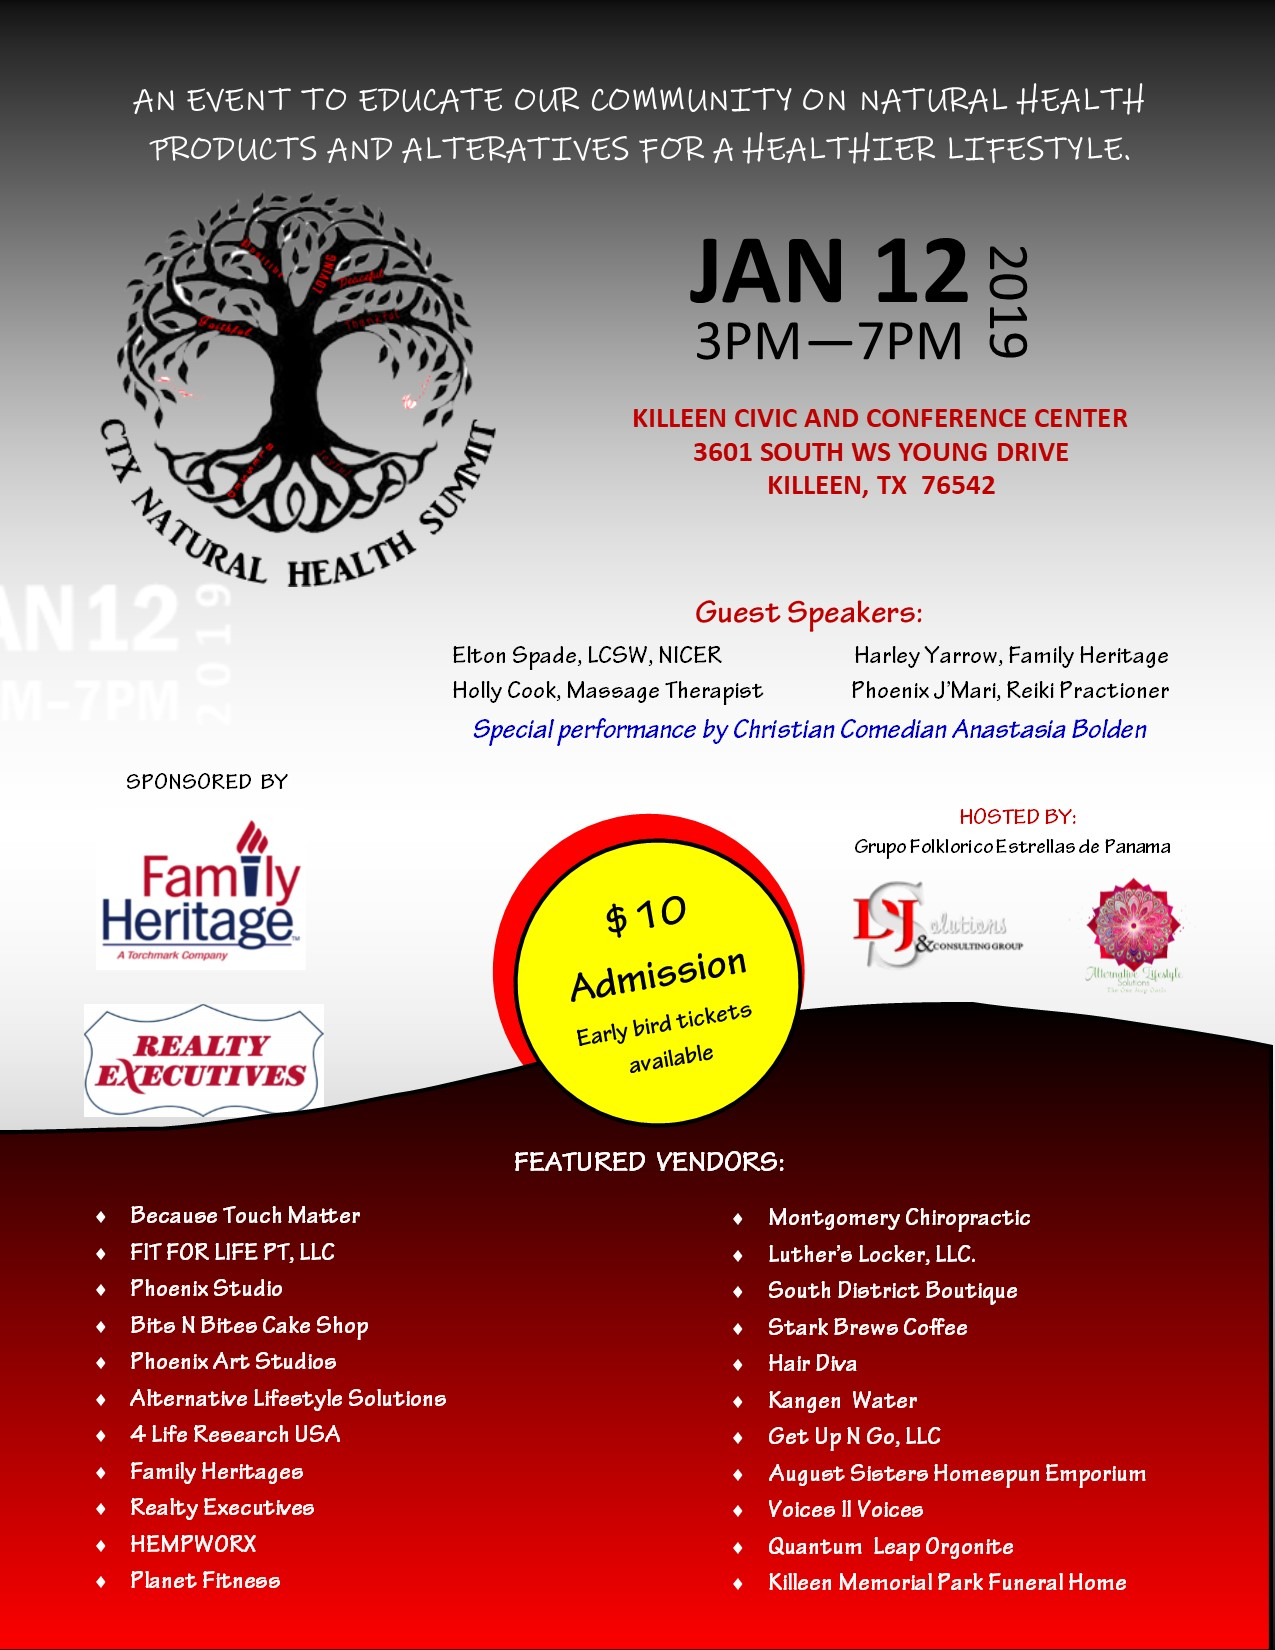 Flyer with vendors name that will be at the event.